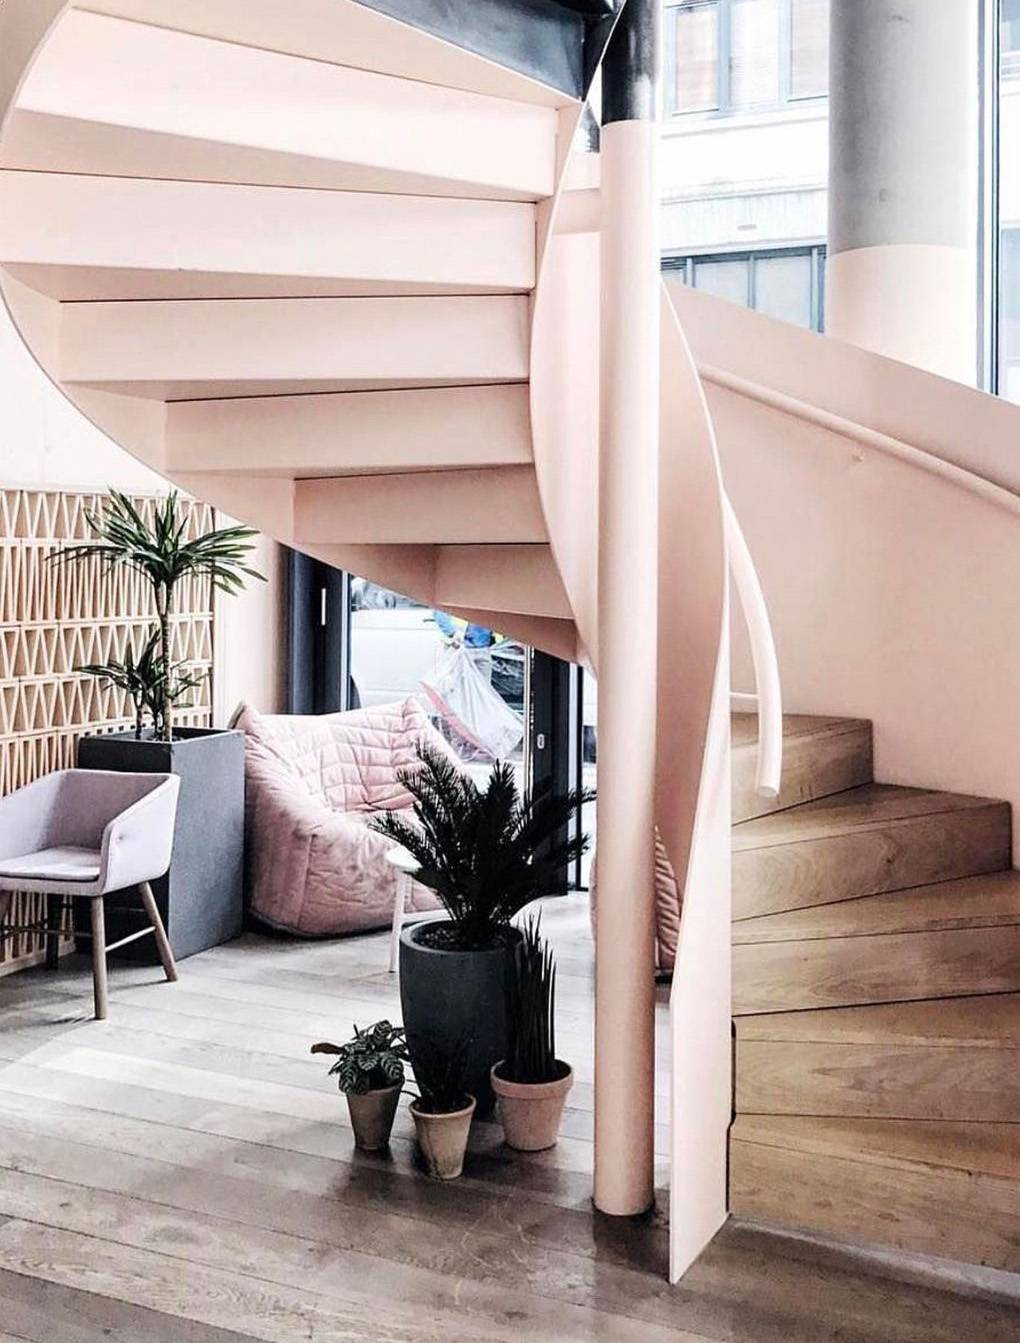 20 London Interiors You Need to Instagram